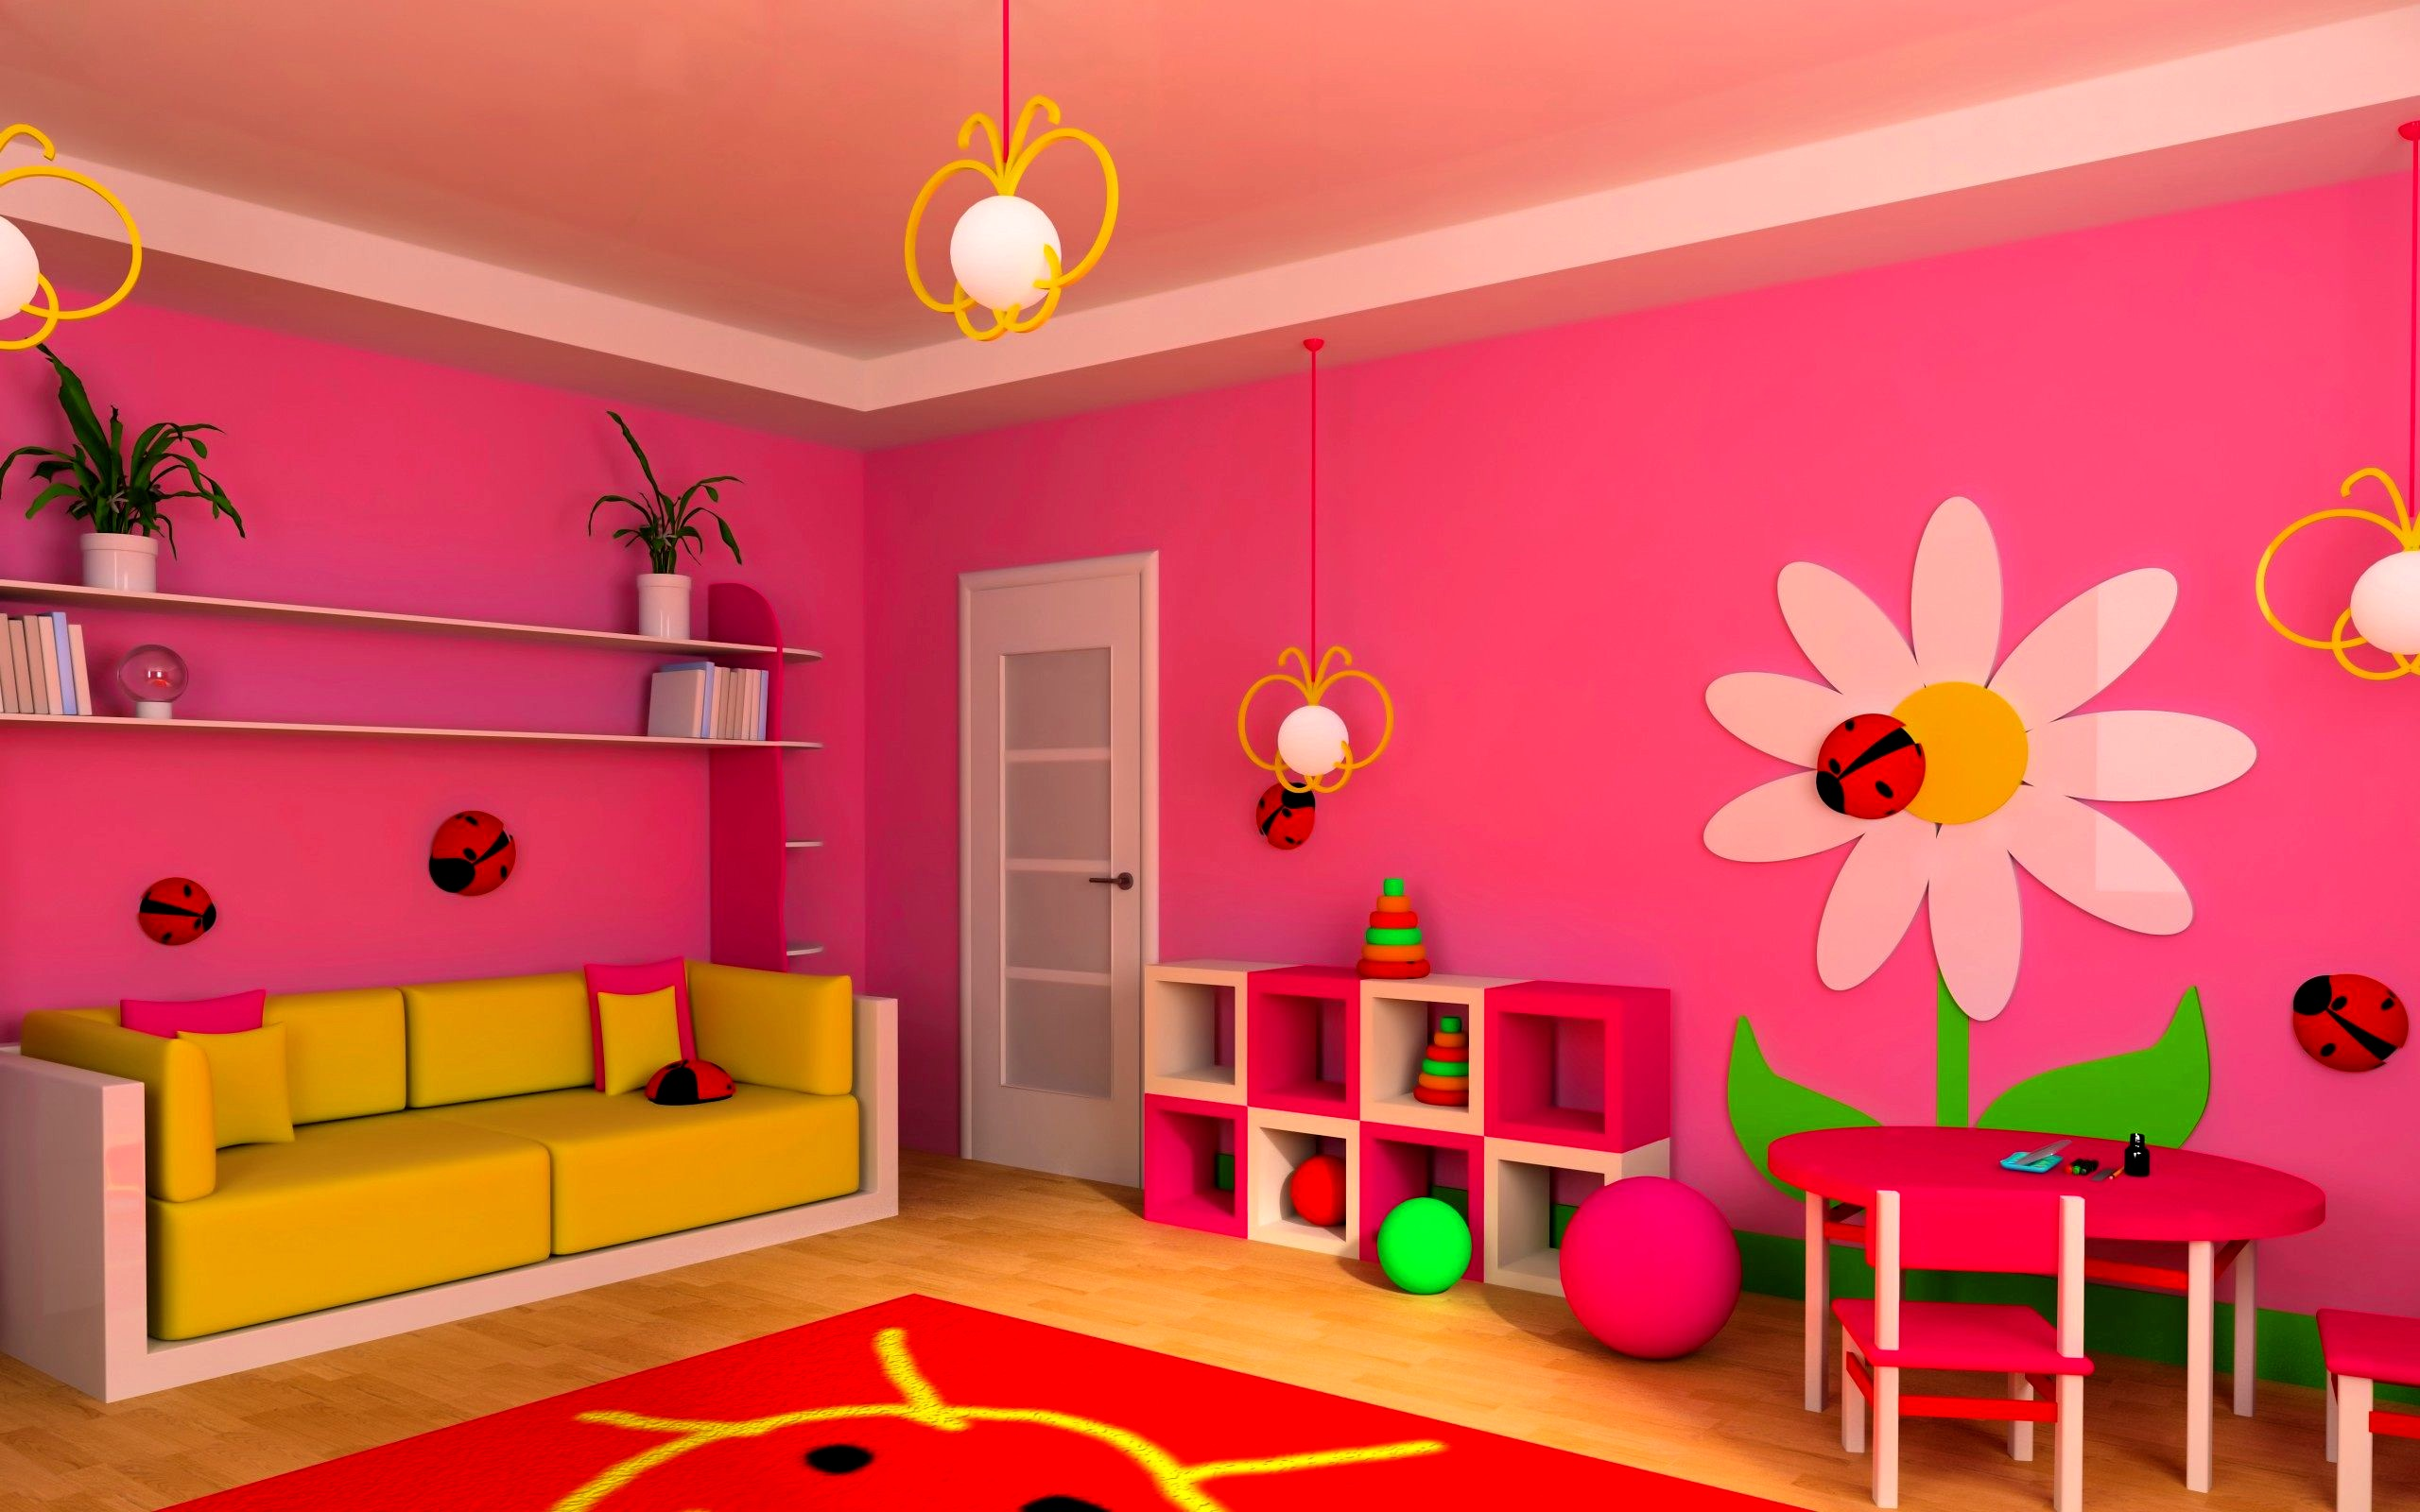 Download Wallpaper For Kids Room India Gallery